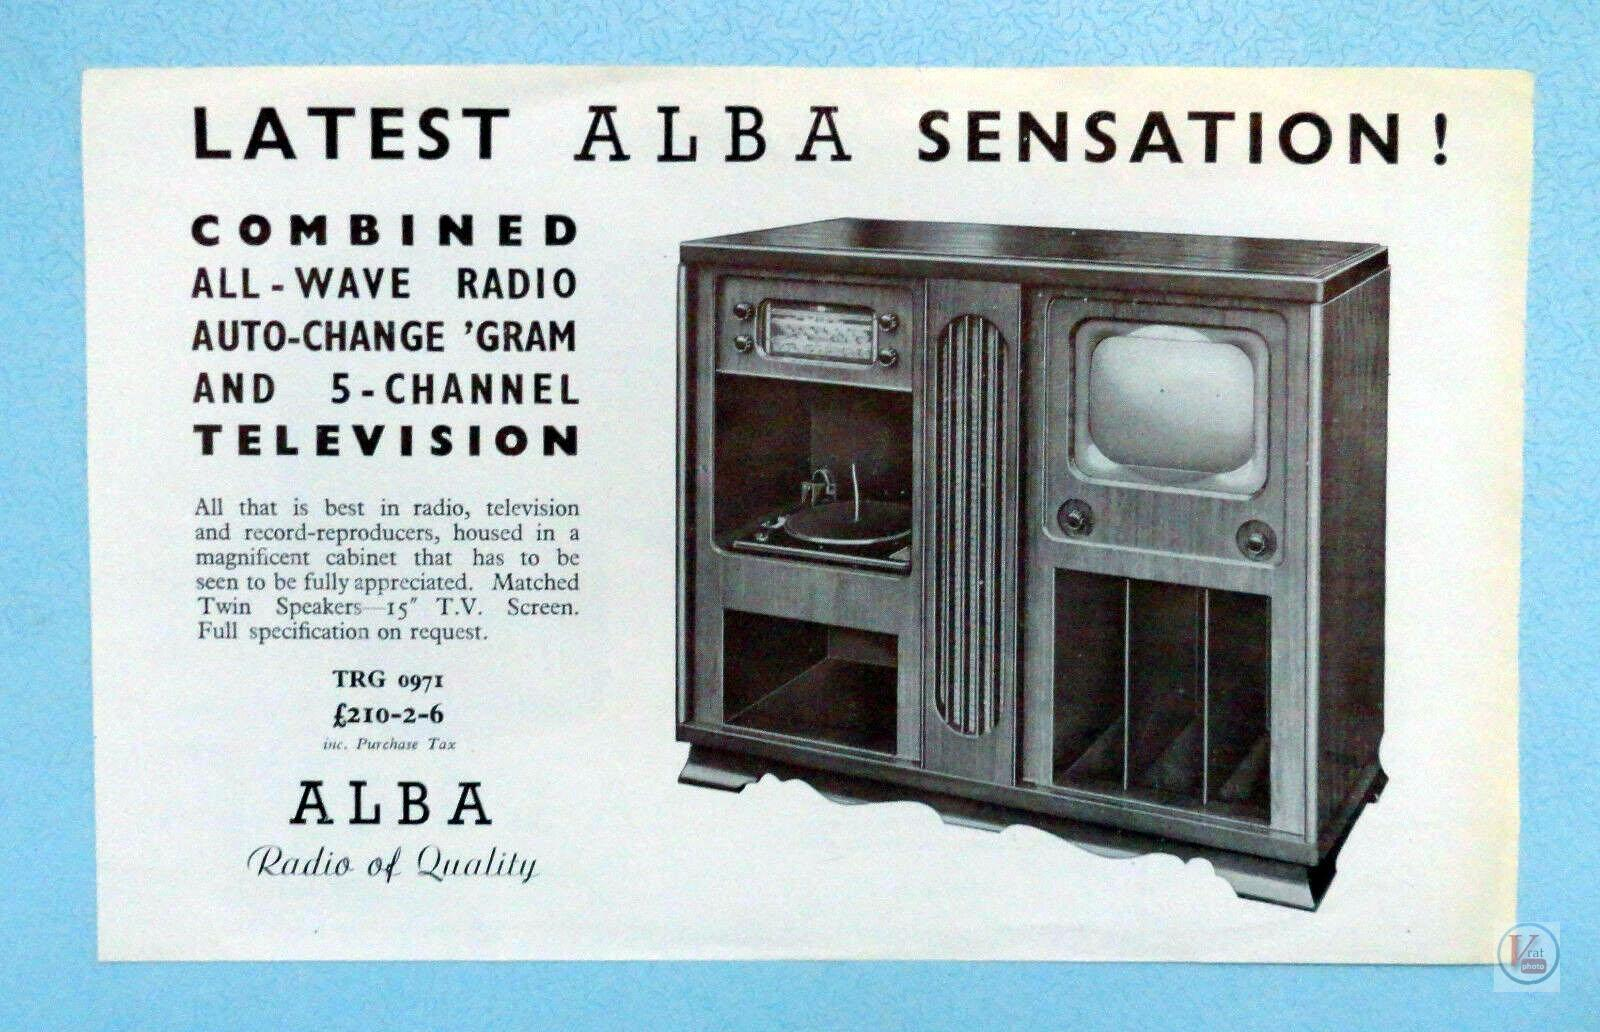 Alba Black & White TV's 4